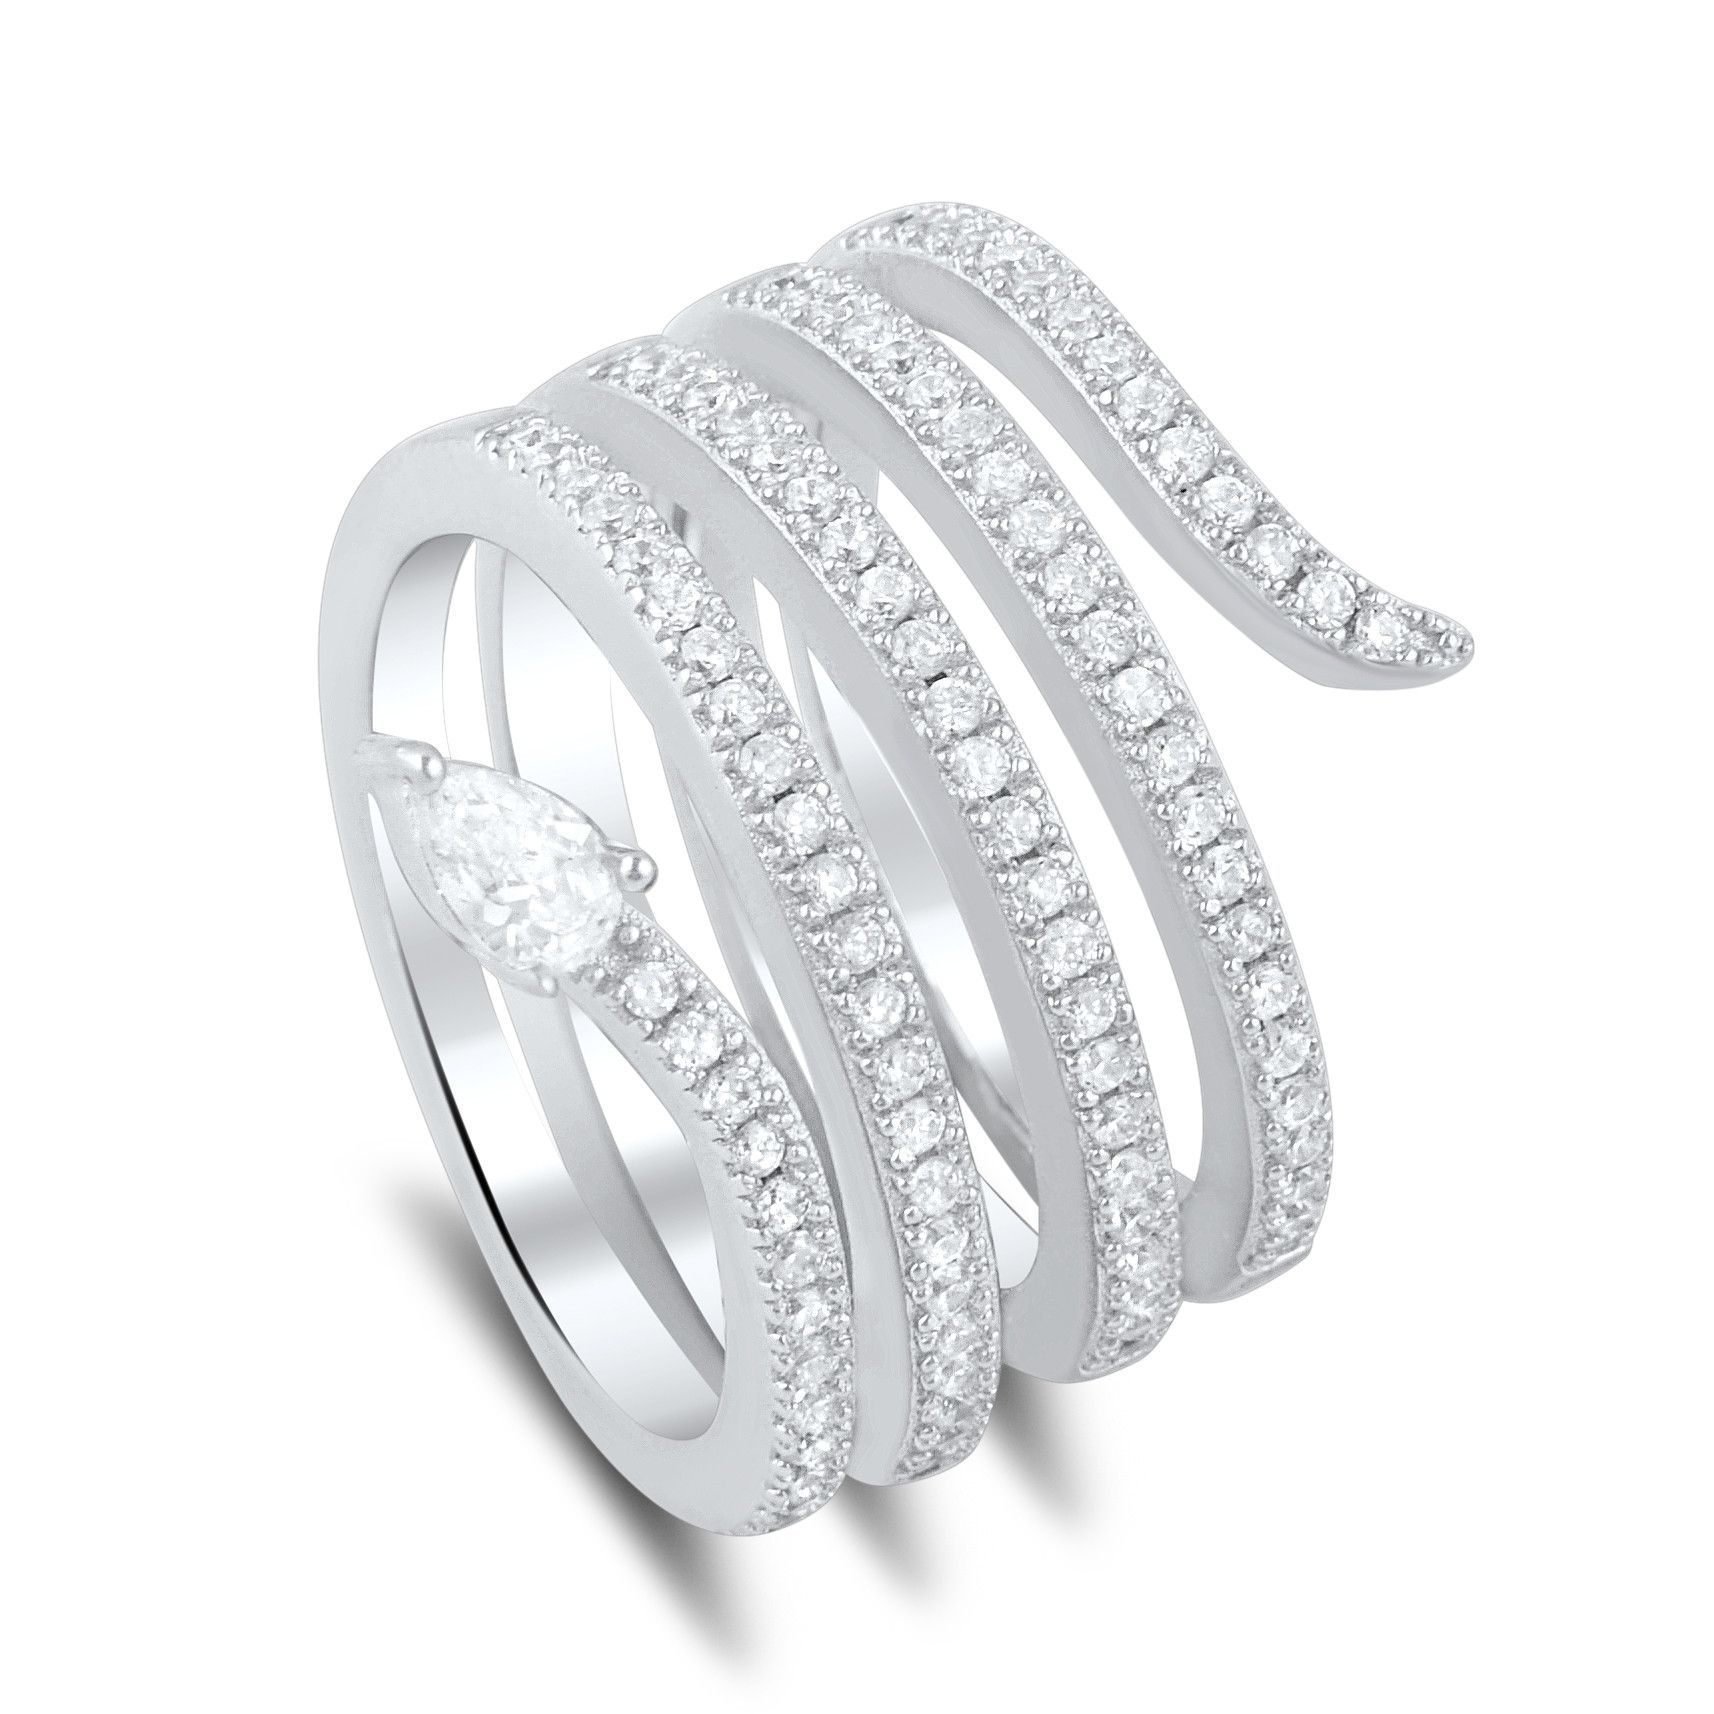 Sterling Silver Cz Wide Wrap Around Multi Row Snake Ring